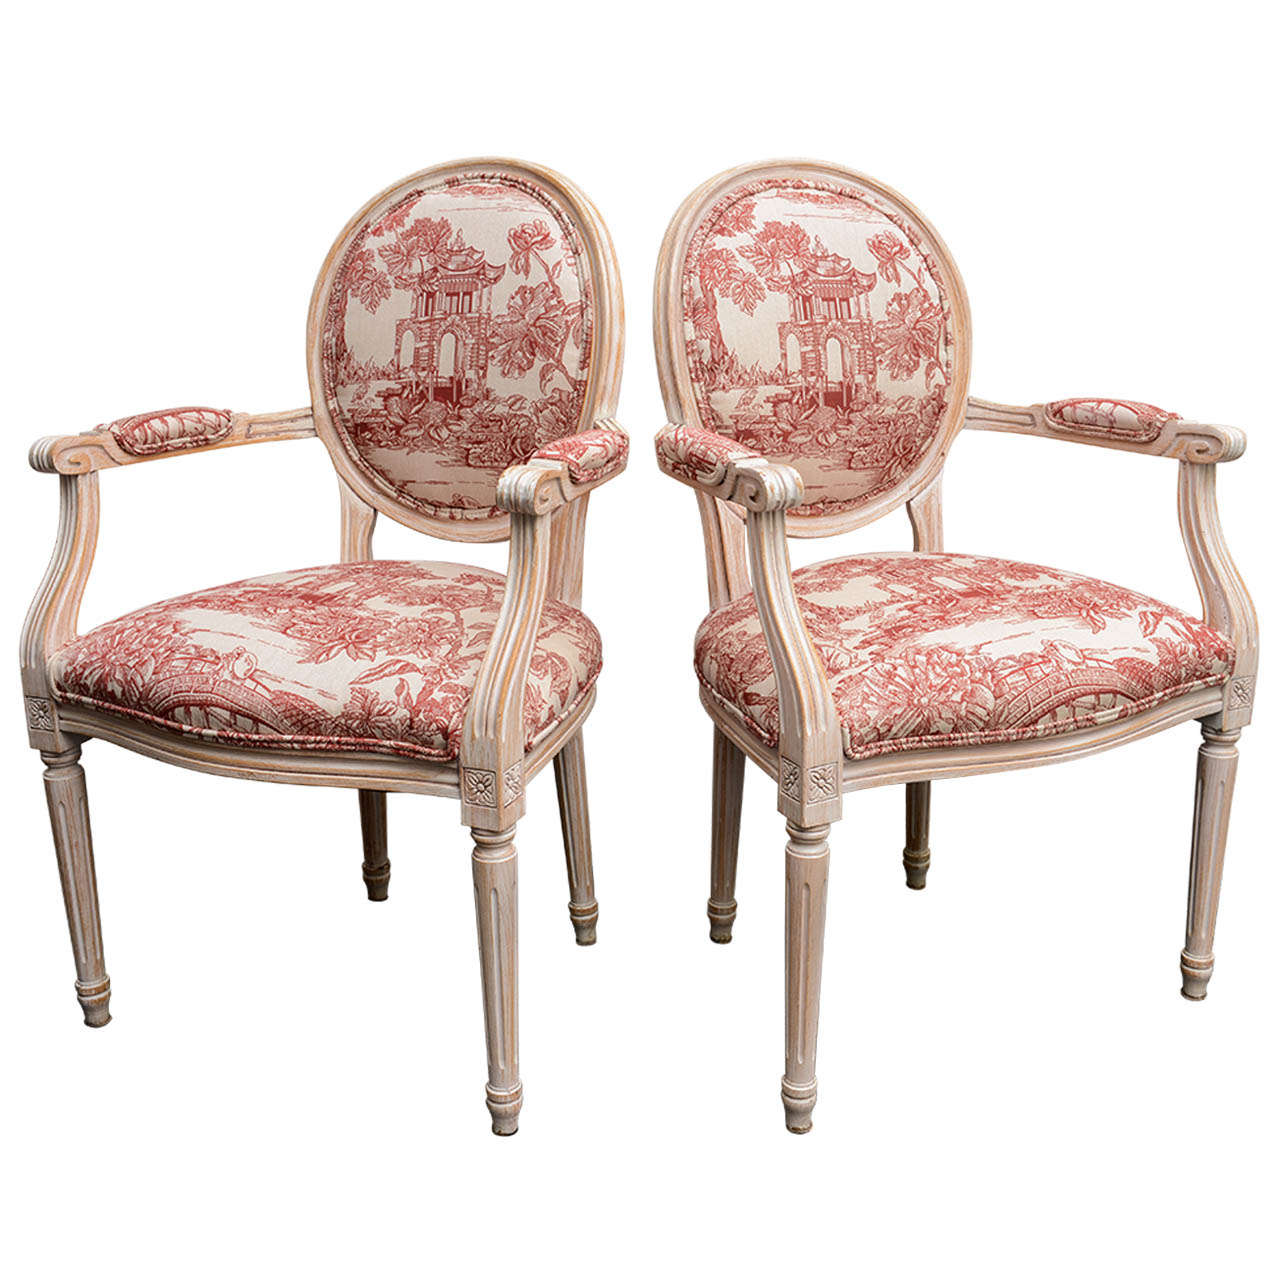 Pair French Louis XVI Style Armchairs Upholstered in a Red Chinoiserie Fabric 1